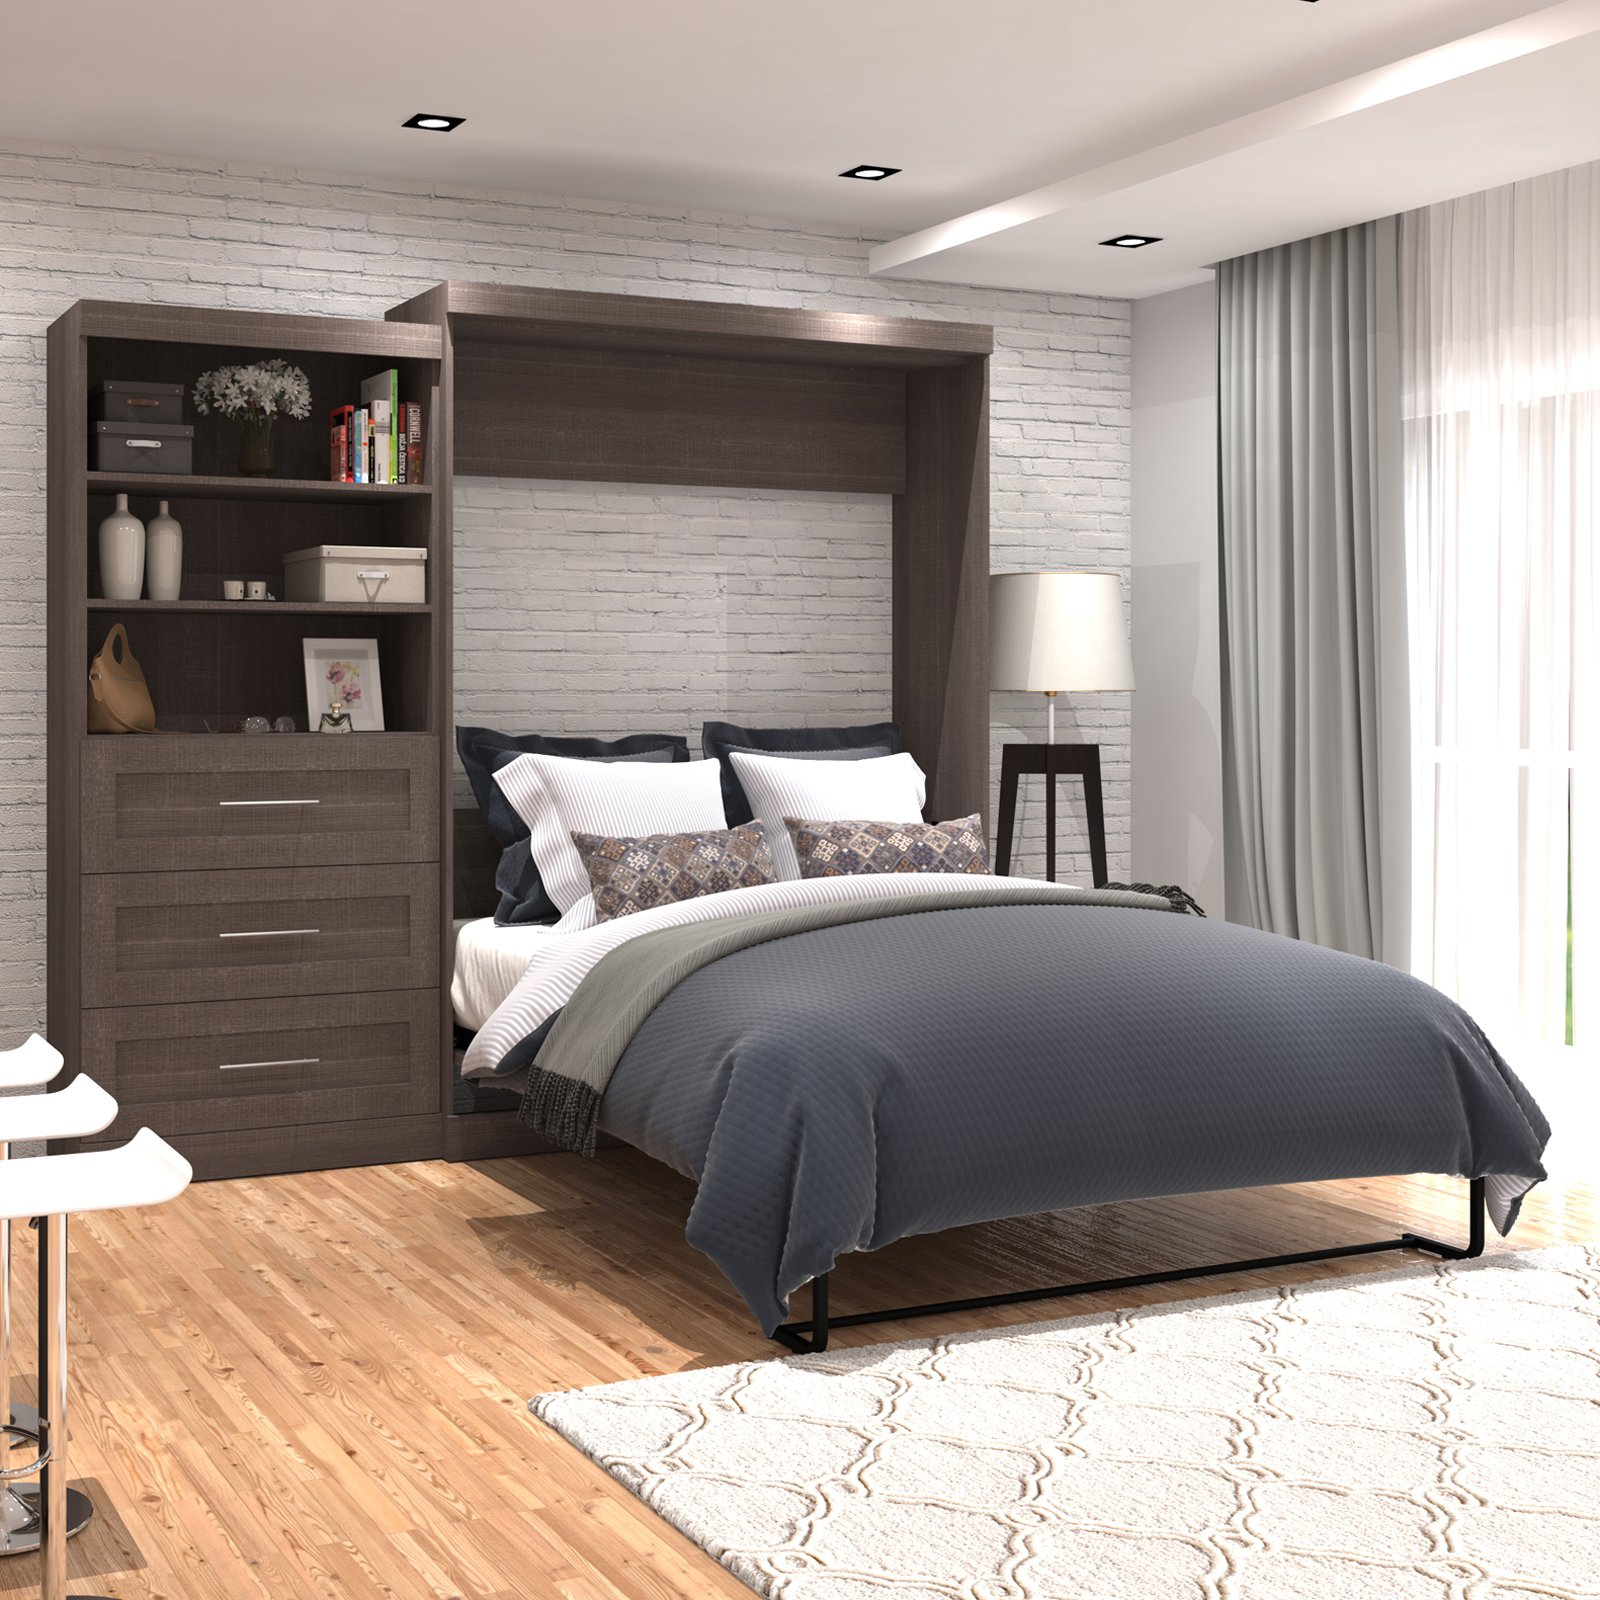 "Pur by Bestar 101"" Queen Wall bed kit in Bark Gray"